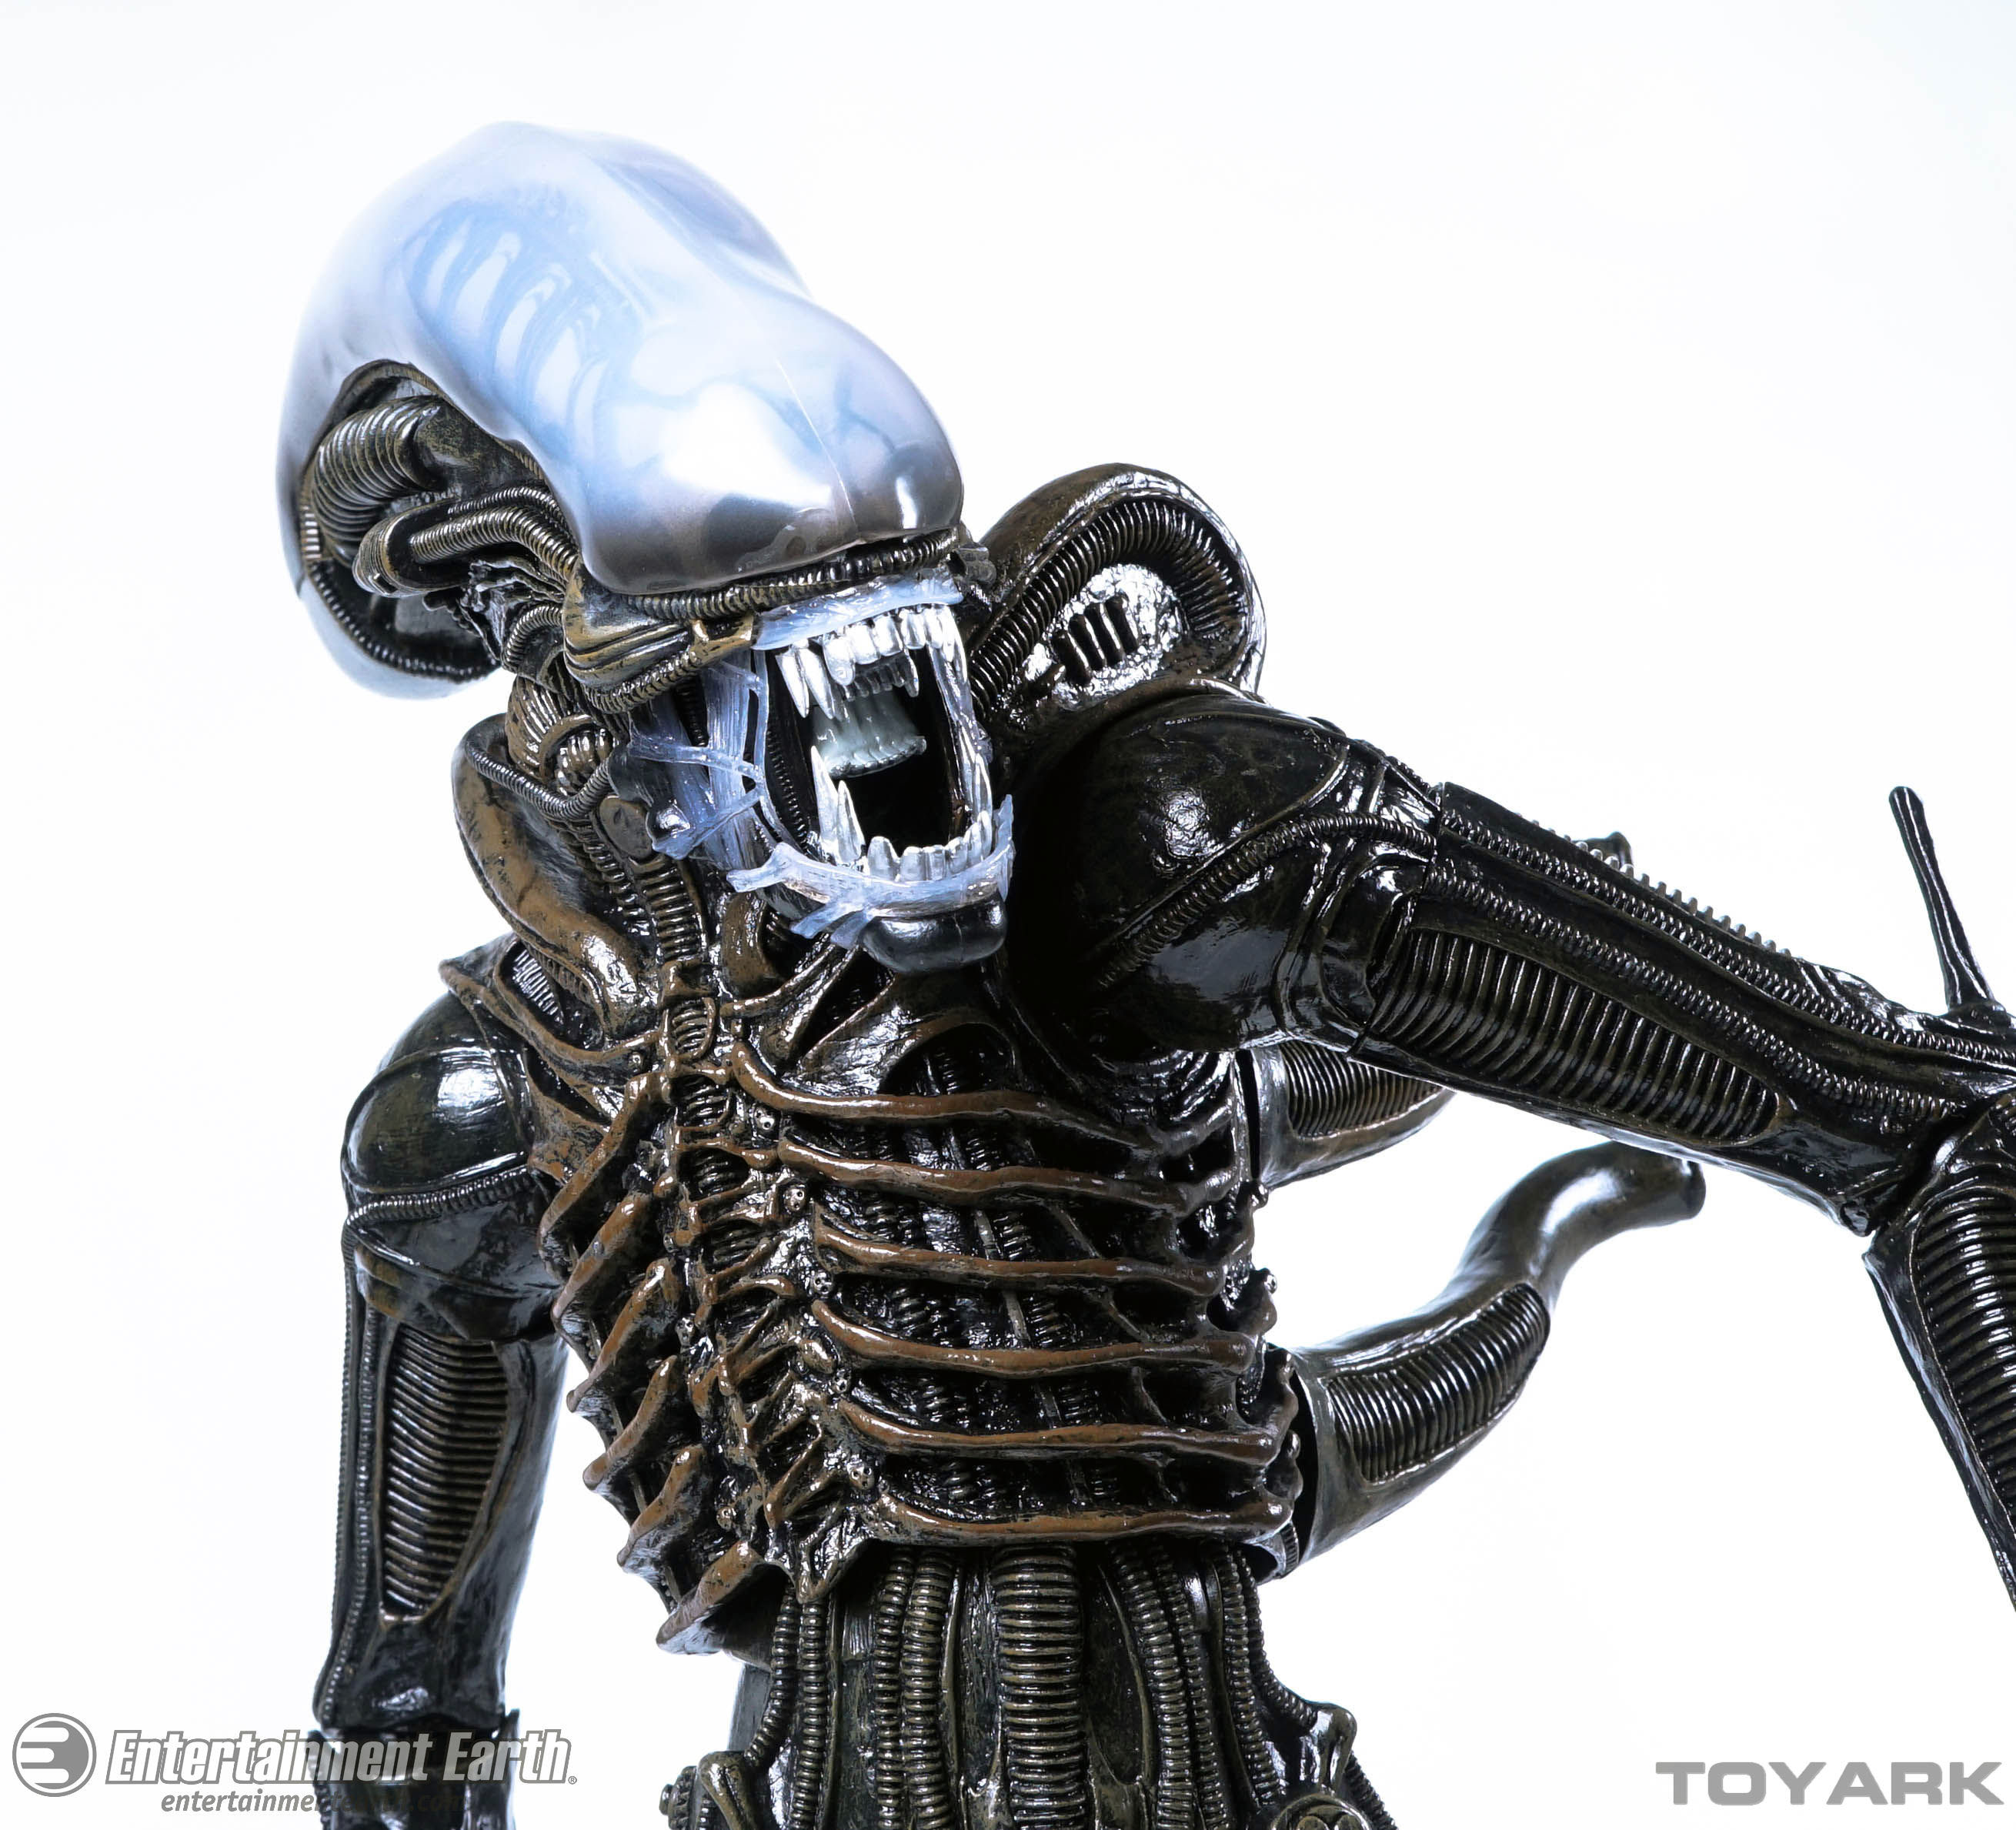 http://news.toyark.com/wp-content/uploads/sites/4/2016/01/NECA-Quarter-Scale-Big-Chap-Alien-037.jpg